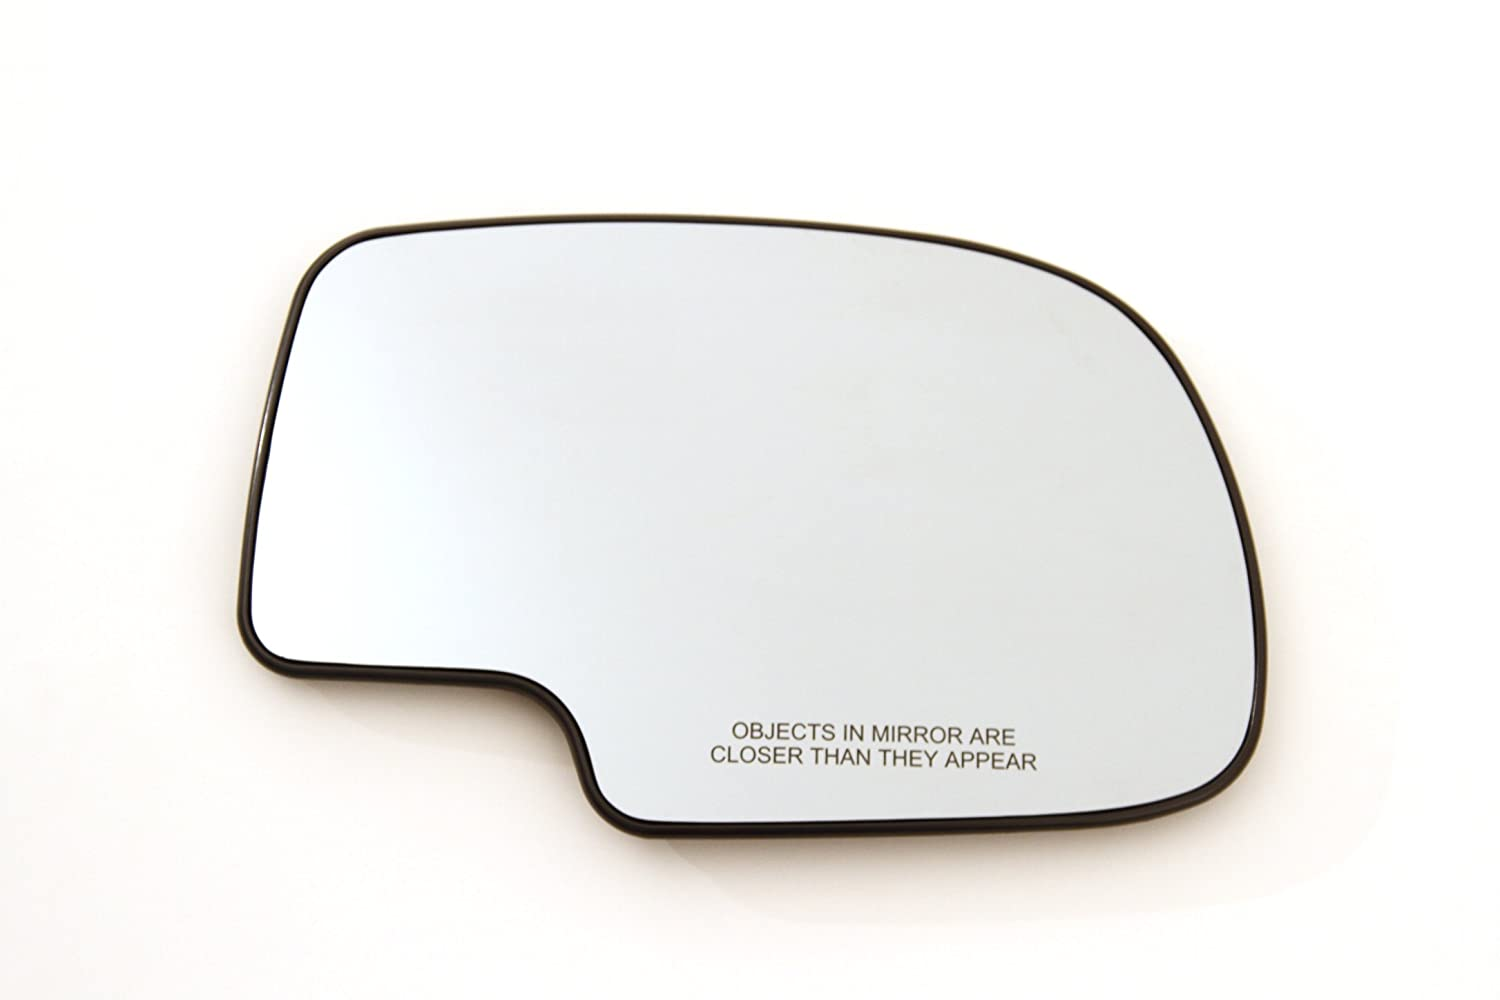 Driver Passenger Side Mirror Glass Led Turn Signal 2002 Silverado Wiring Diagram Heated Mirrors Chevy Avalanche Suburban Tahoe Gmc Sierra Denali Yukon Cadillac